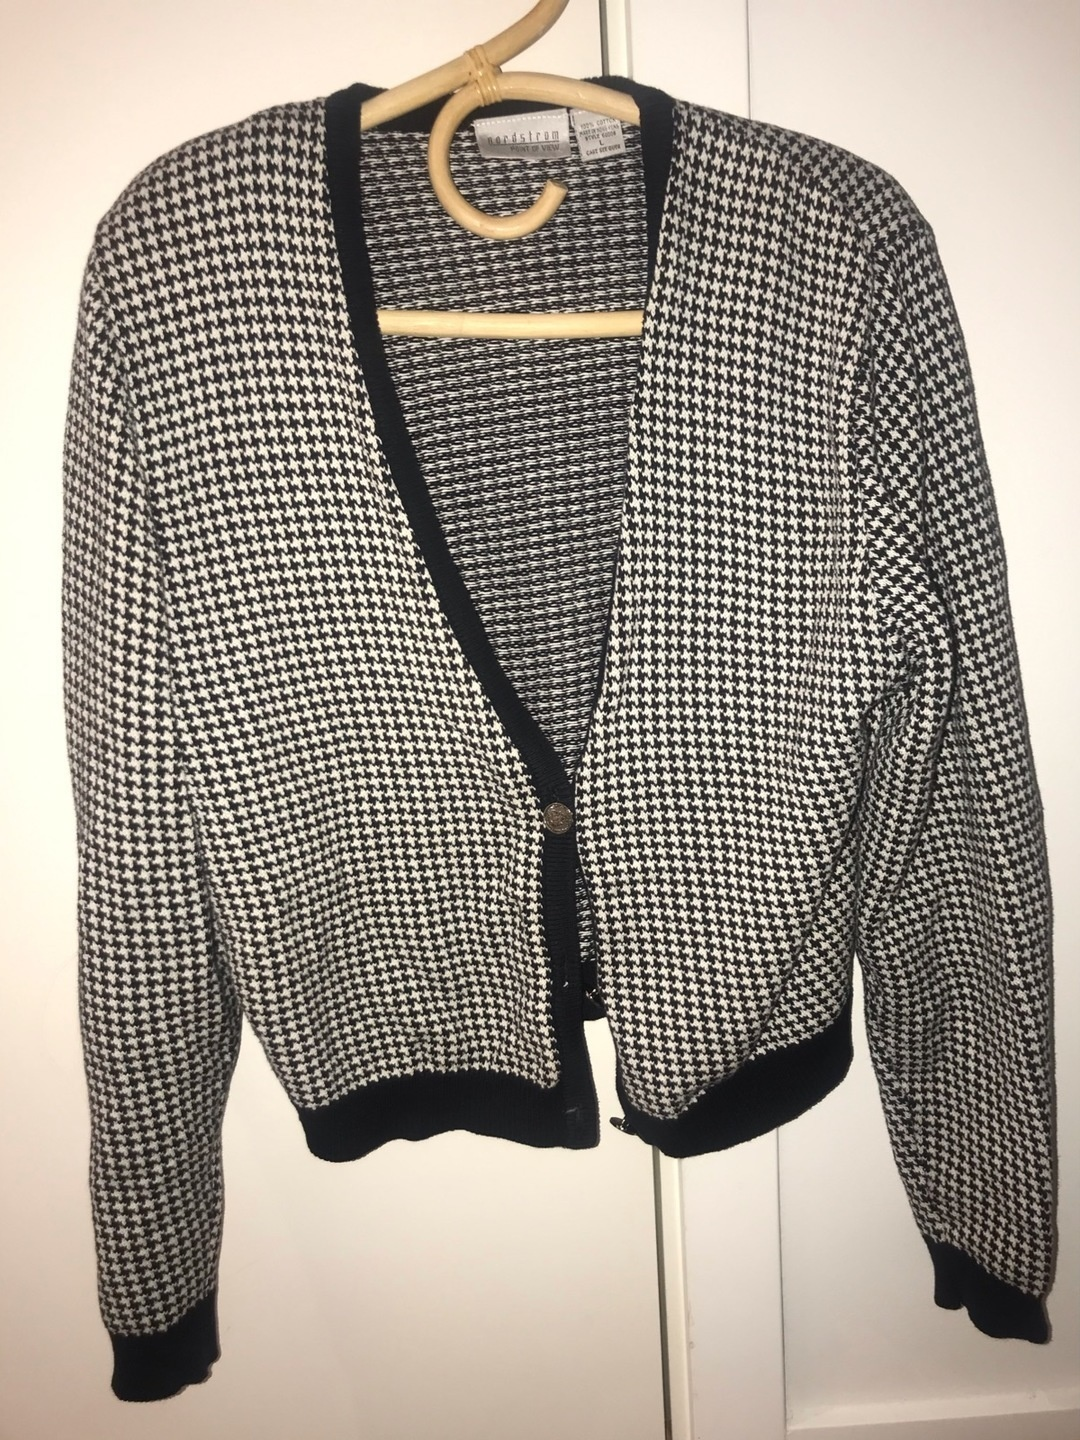 Women's jumpers & cardigans - NORDSTROM photo 1